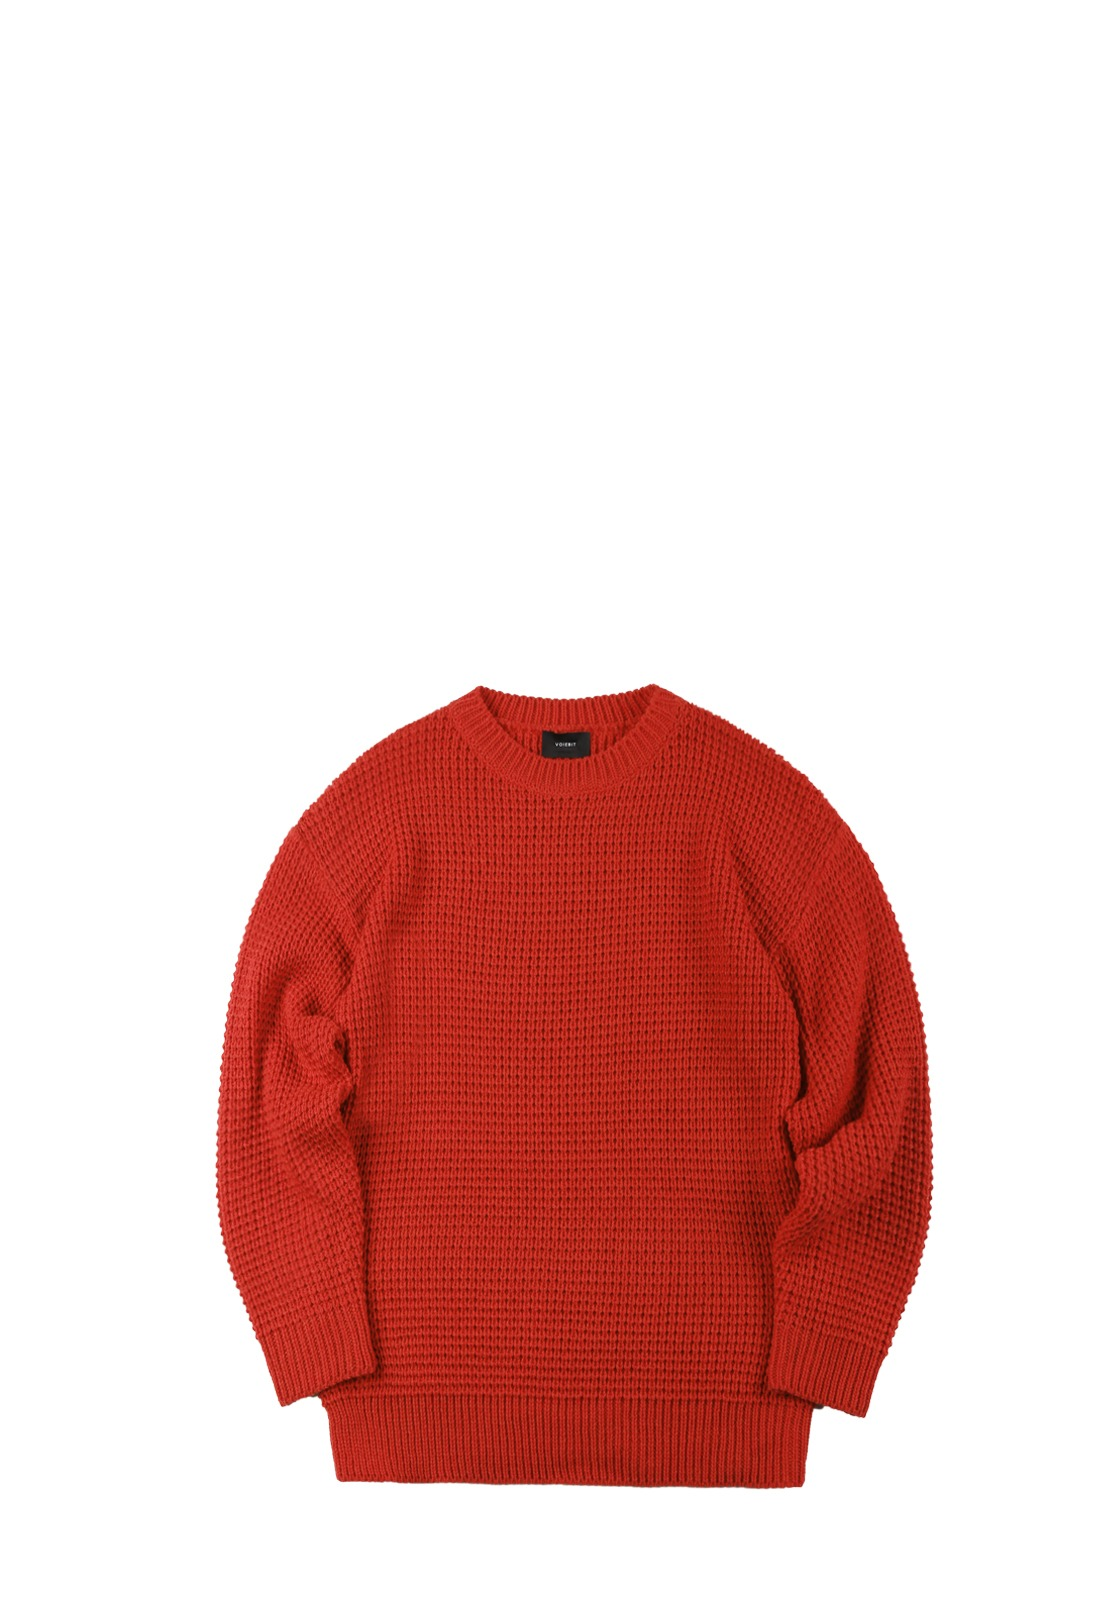 V551 WAFFLE OVERFIT ROUND KNIT   RED